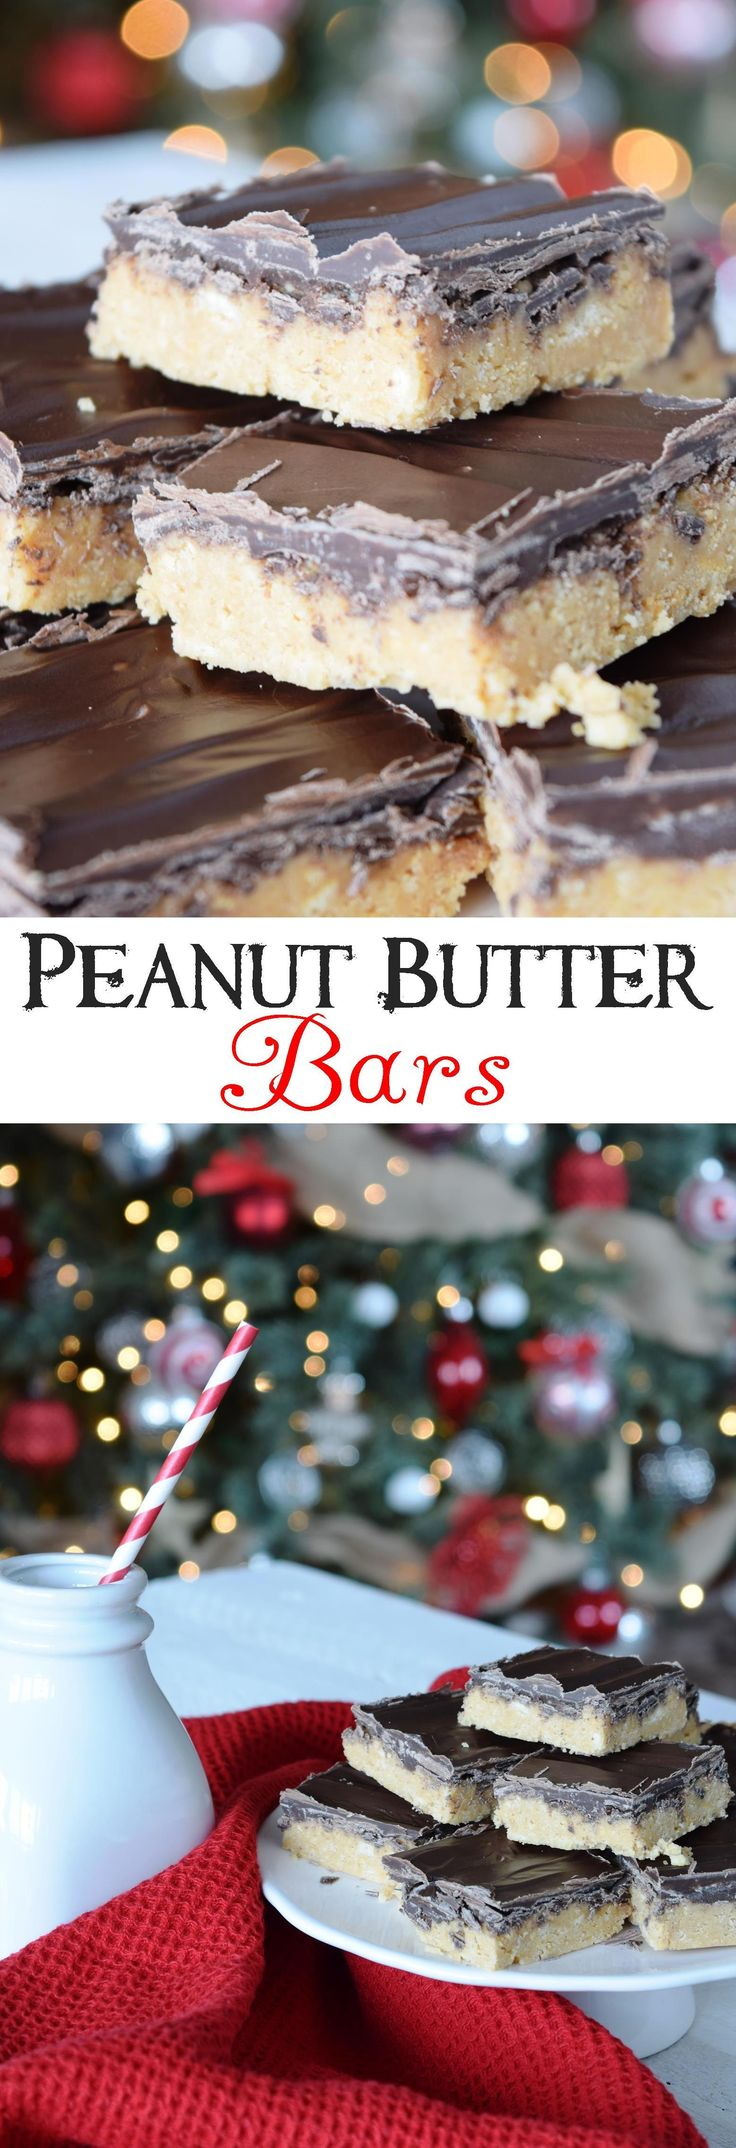 A newfoundland traditional sweet treat is the peanut butter ball.  It's not something you see only at Christmas time, but it's most definitely on most Christmas dessert tables.  In a previous life, a family friend of my ex wife, would make these peanut butter balls almost better than anyone I know!  In fact, she shipped …